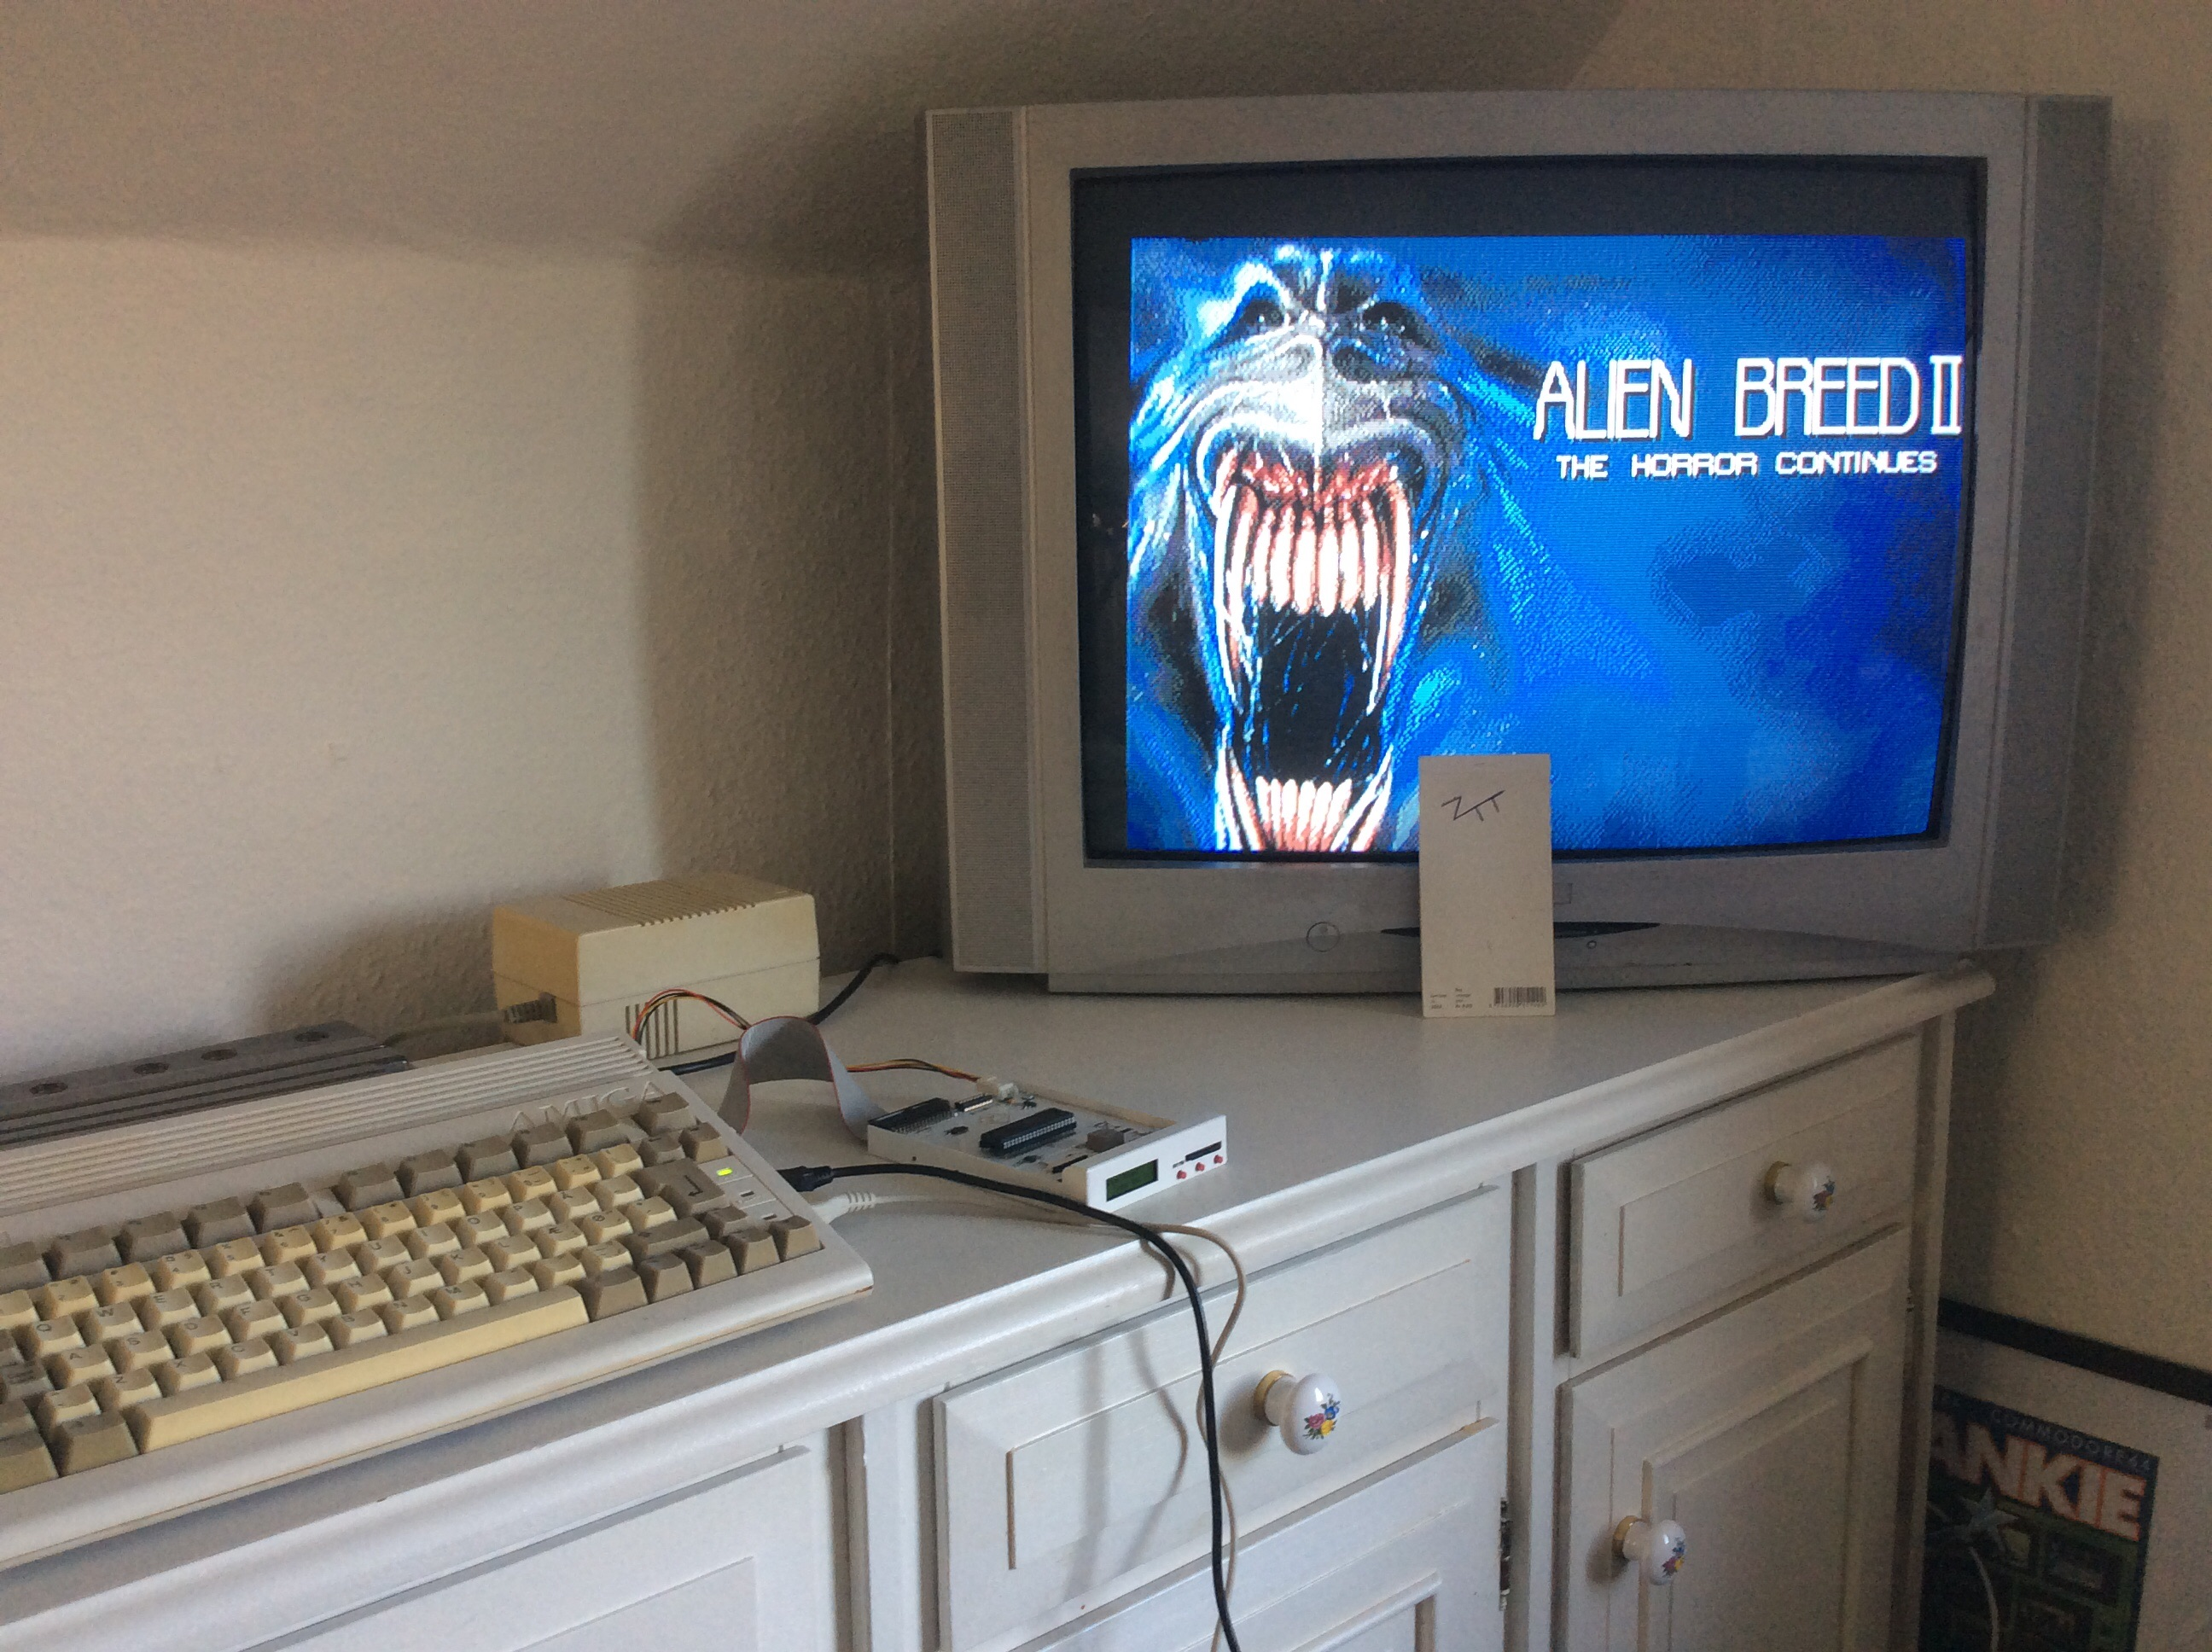 Frankie: Alien Breed II: The Horror Continues [Easy] (Amiga) 71,790 points on 2016-07-08 09:04:32